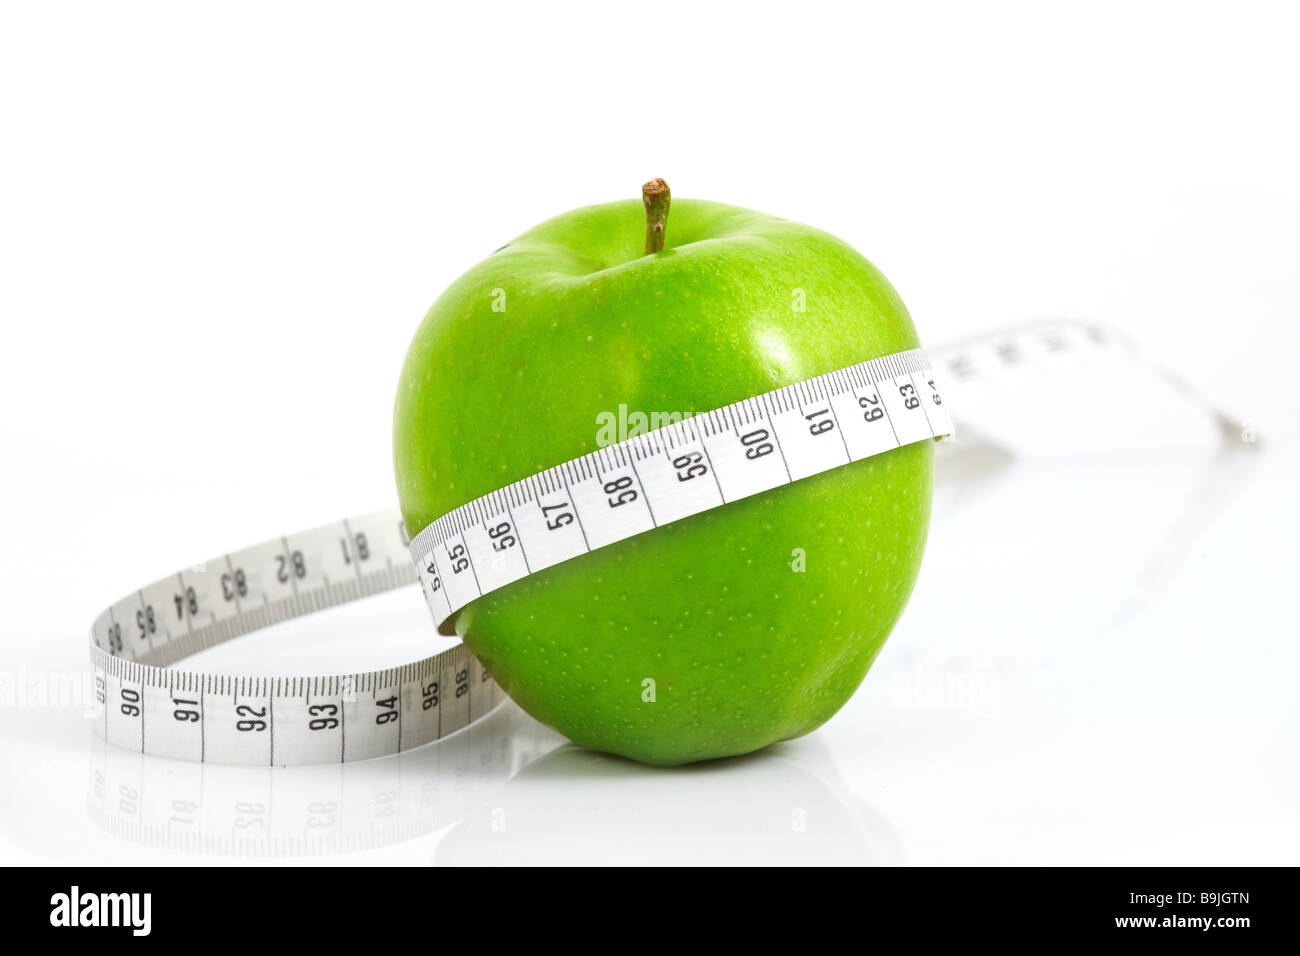 Green apples measured the meter sports apples - Stock Image